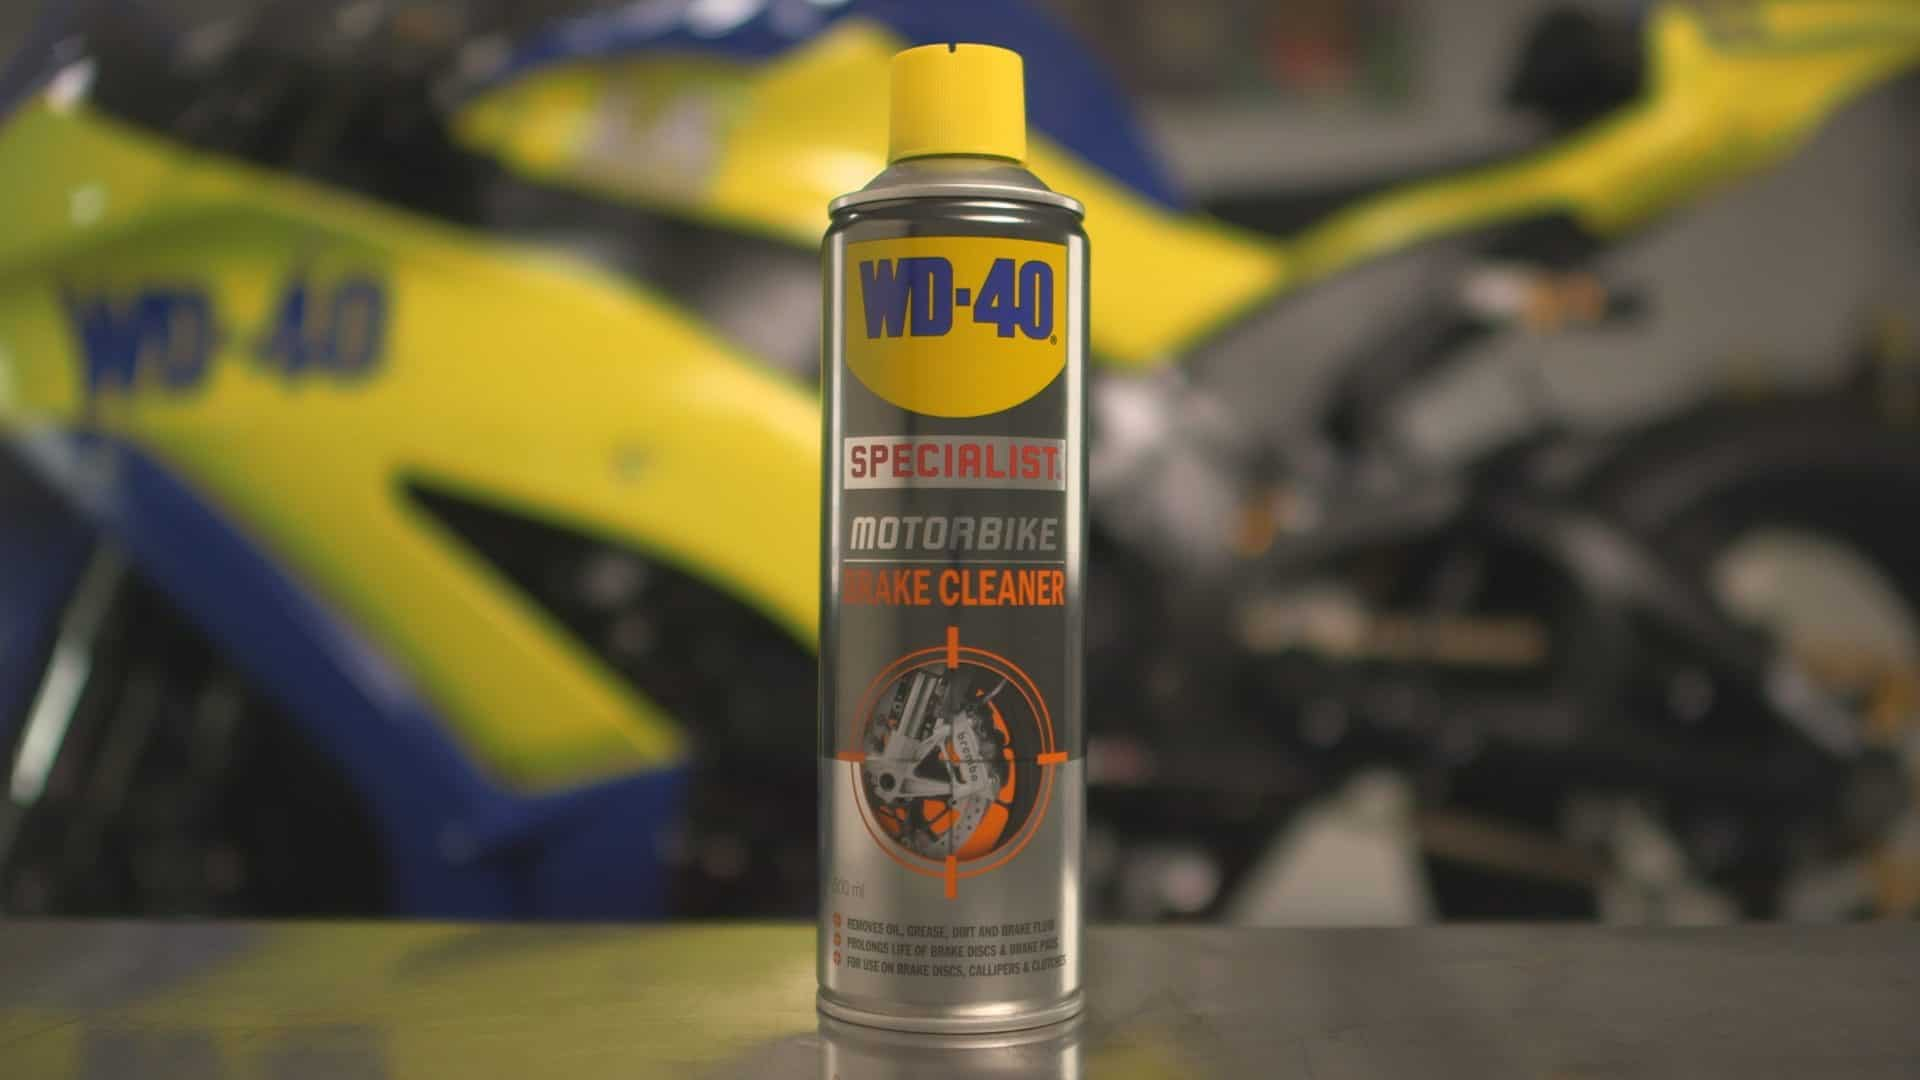 WD-40_SP_MB_Brake_Cleaner_2